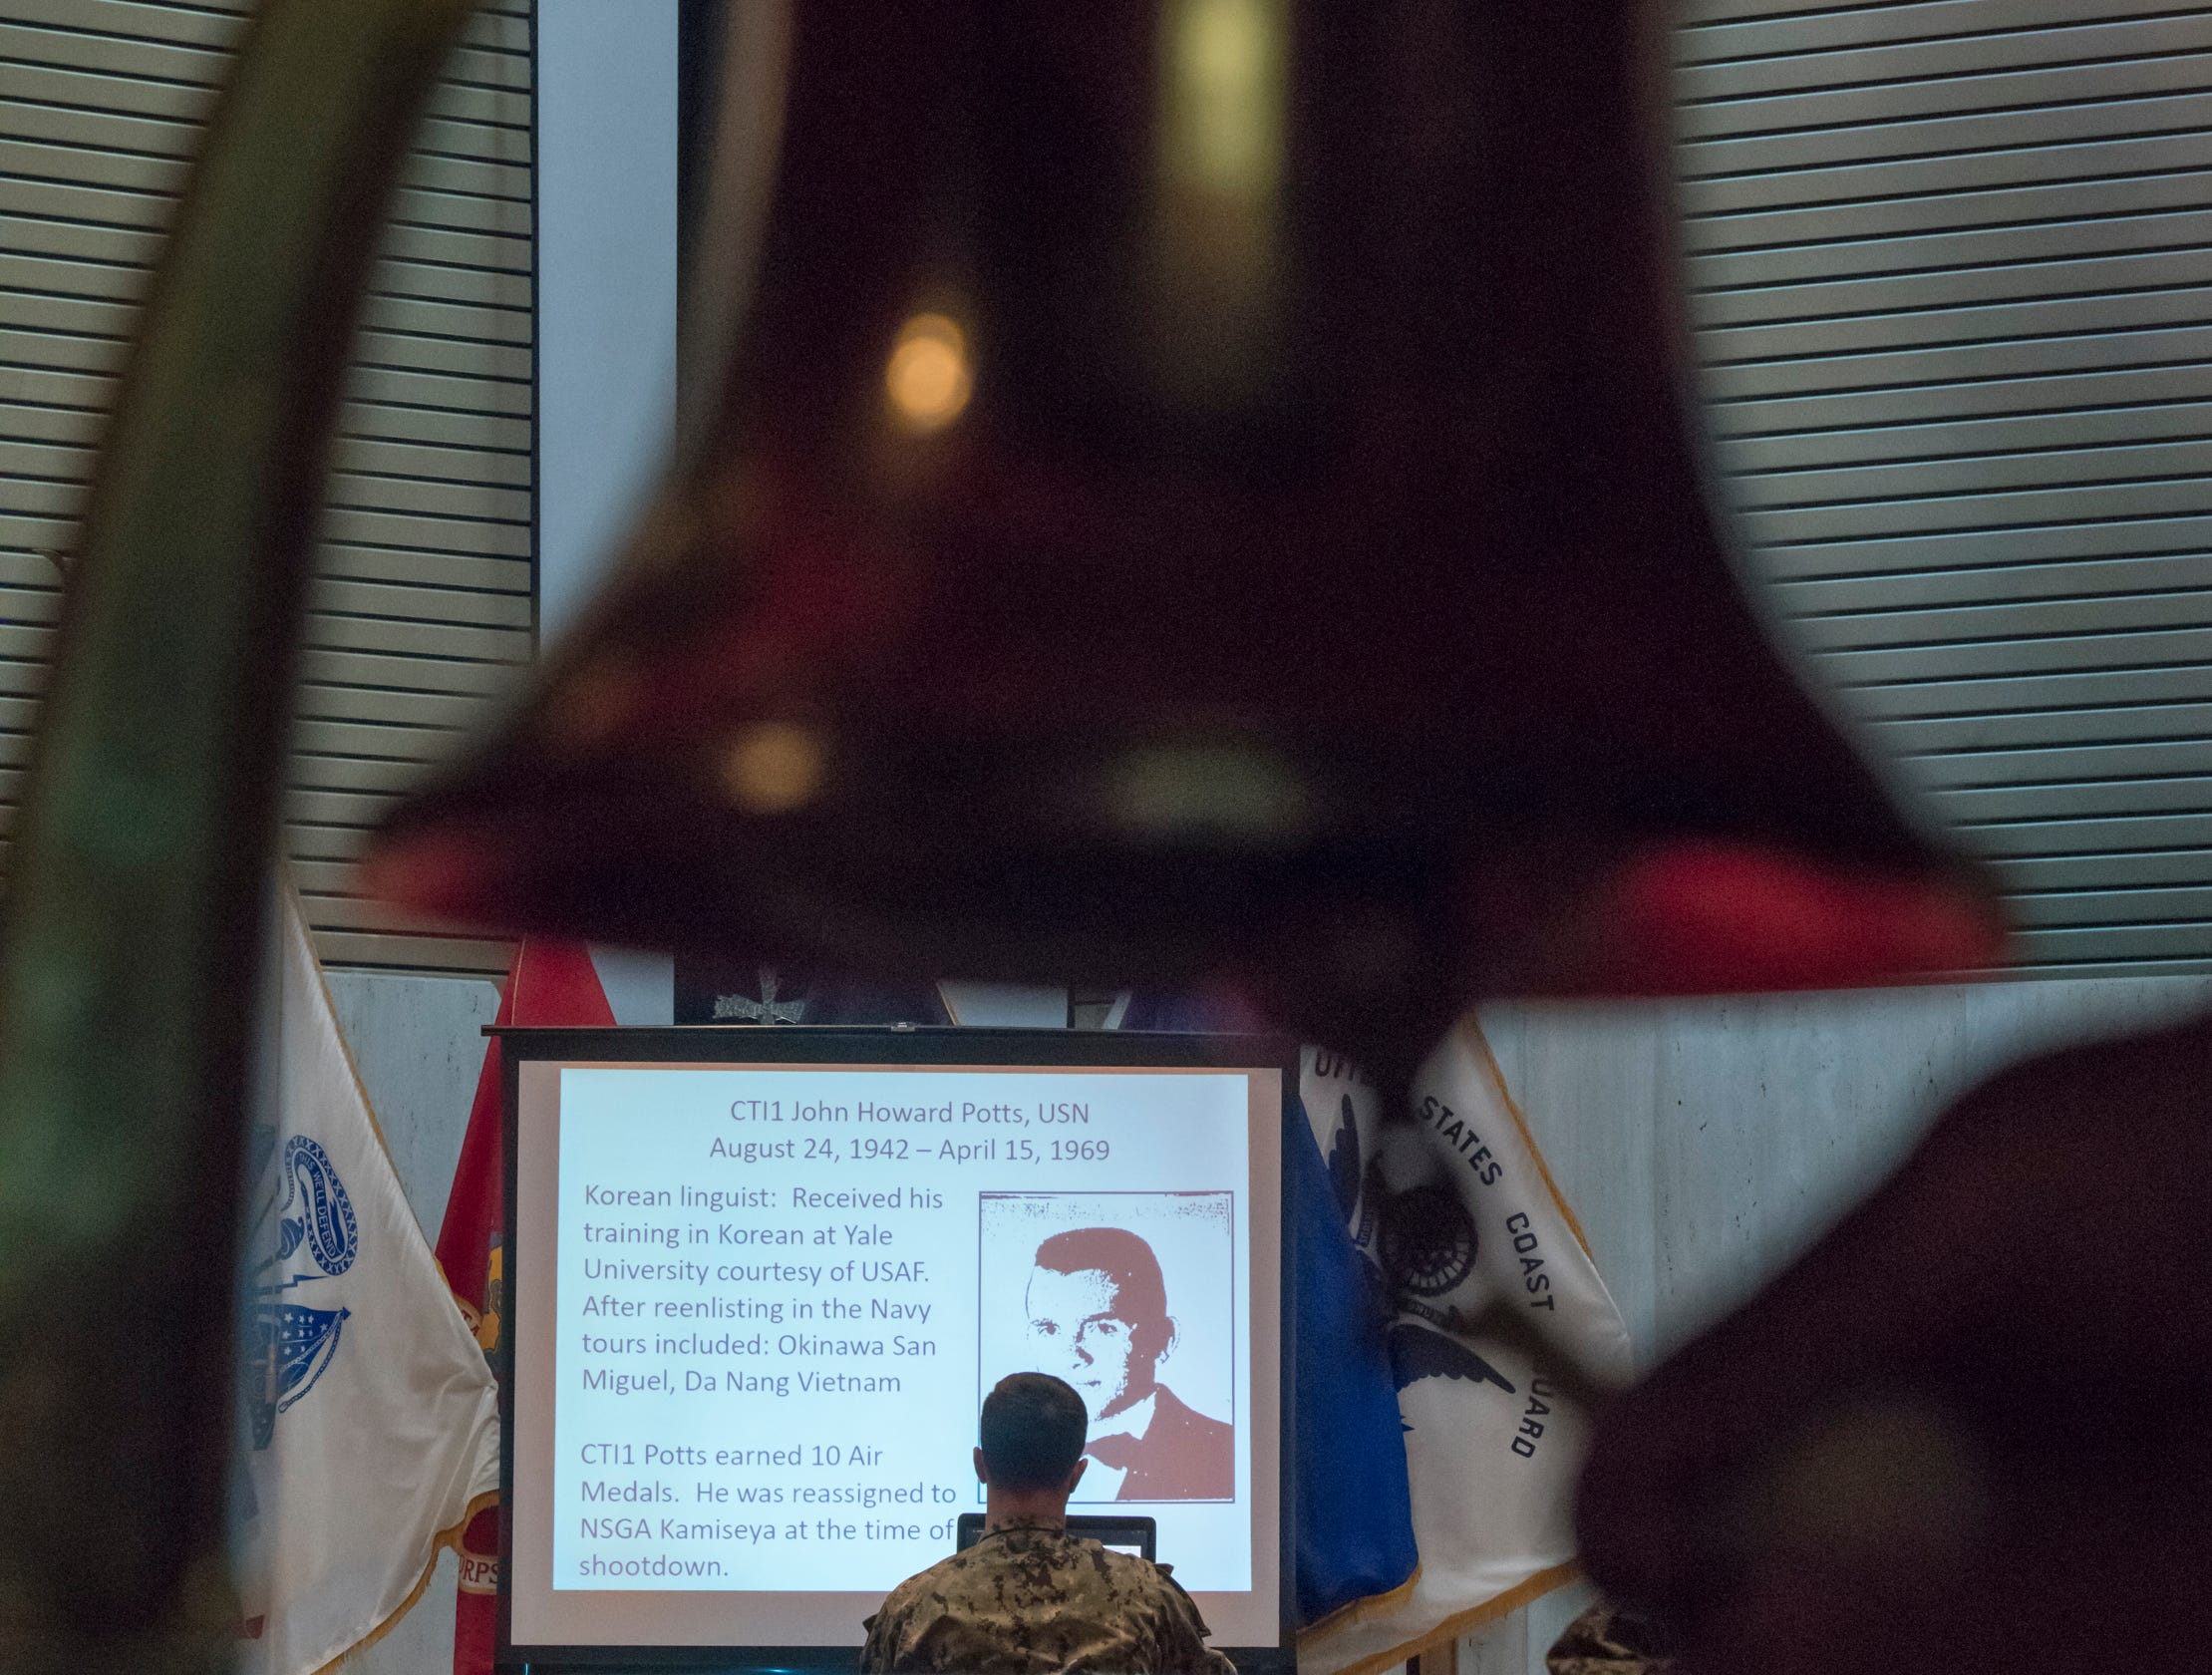 """A bell is rung as Seaman Mercedes Molina reads the names of the fallen crew of the EC-121M """"Beggar Shadow"""" reconnaissance plane during a memorial service at Corry Station in Pensacola on Monday, April 15, 2019.  The Navy EC-121M reconnaissance aircraft (PR-21/BuNo 135749) of Fleet Air Reconnaissance Squadron One (VQ-1) was shot down over the Sea of Japan by North Korea on Monday, April 14,1969.  All 31 crewmembers were killed, including nine NAVSECGRU cryptologists."""